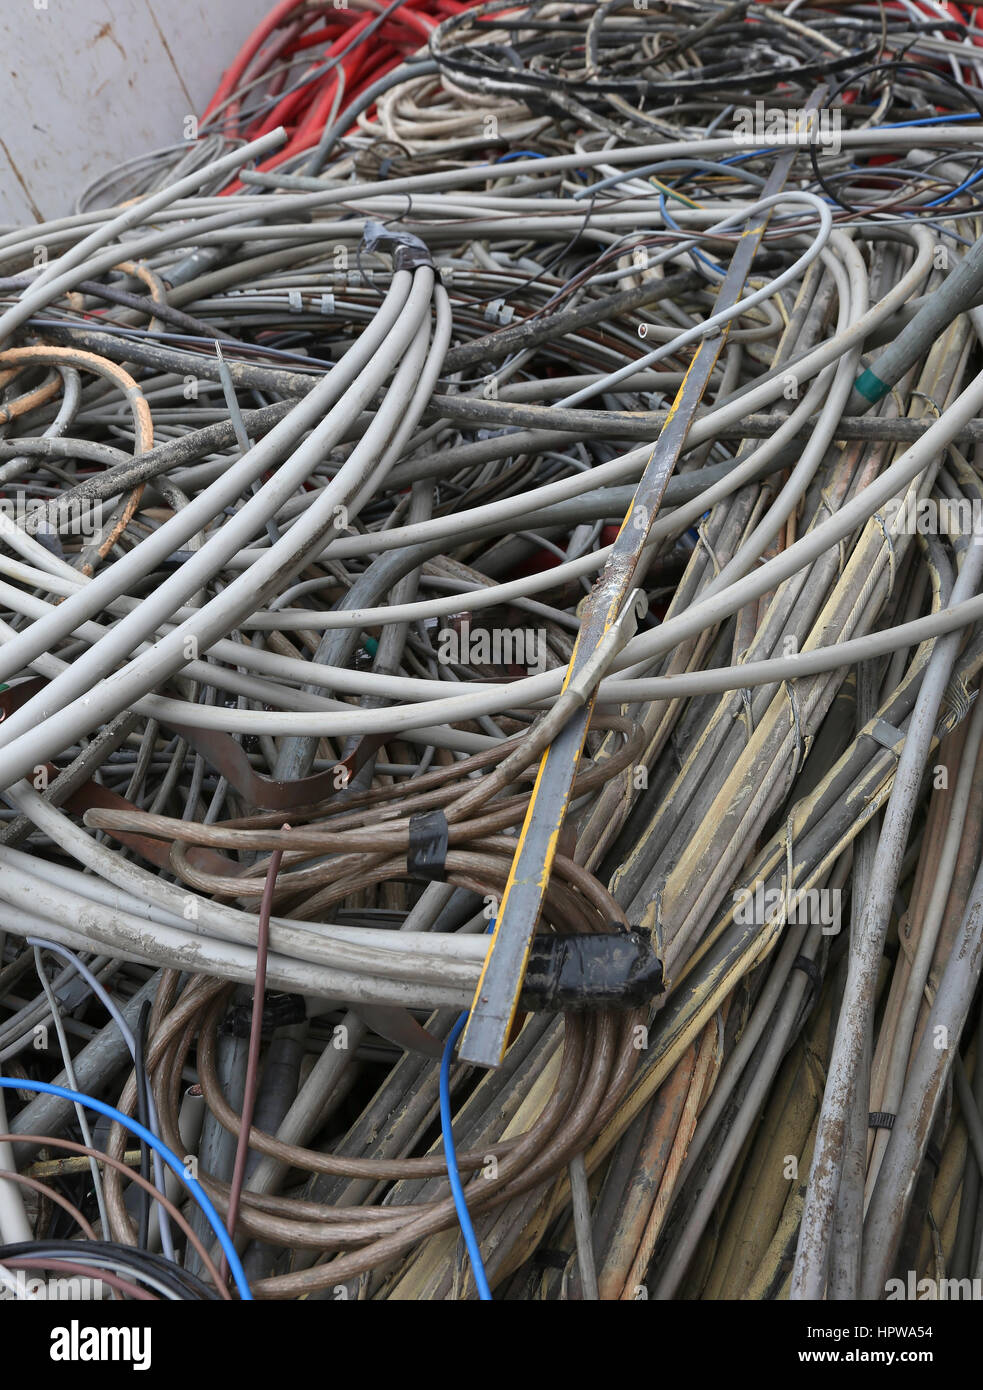 Recycling Wire Cables Stock Photos & Recycling Wire Cables Stock ...